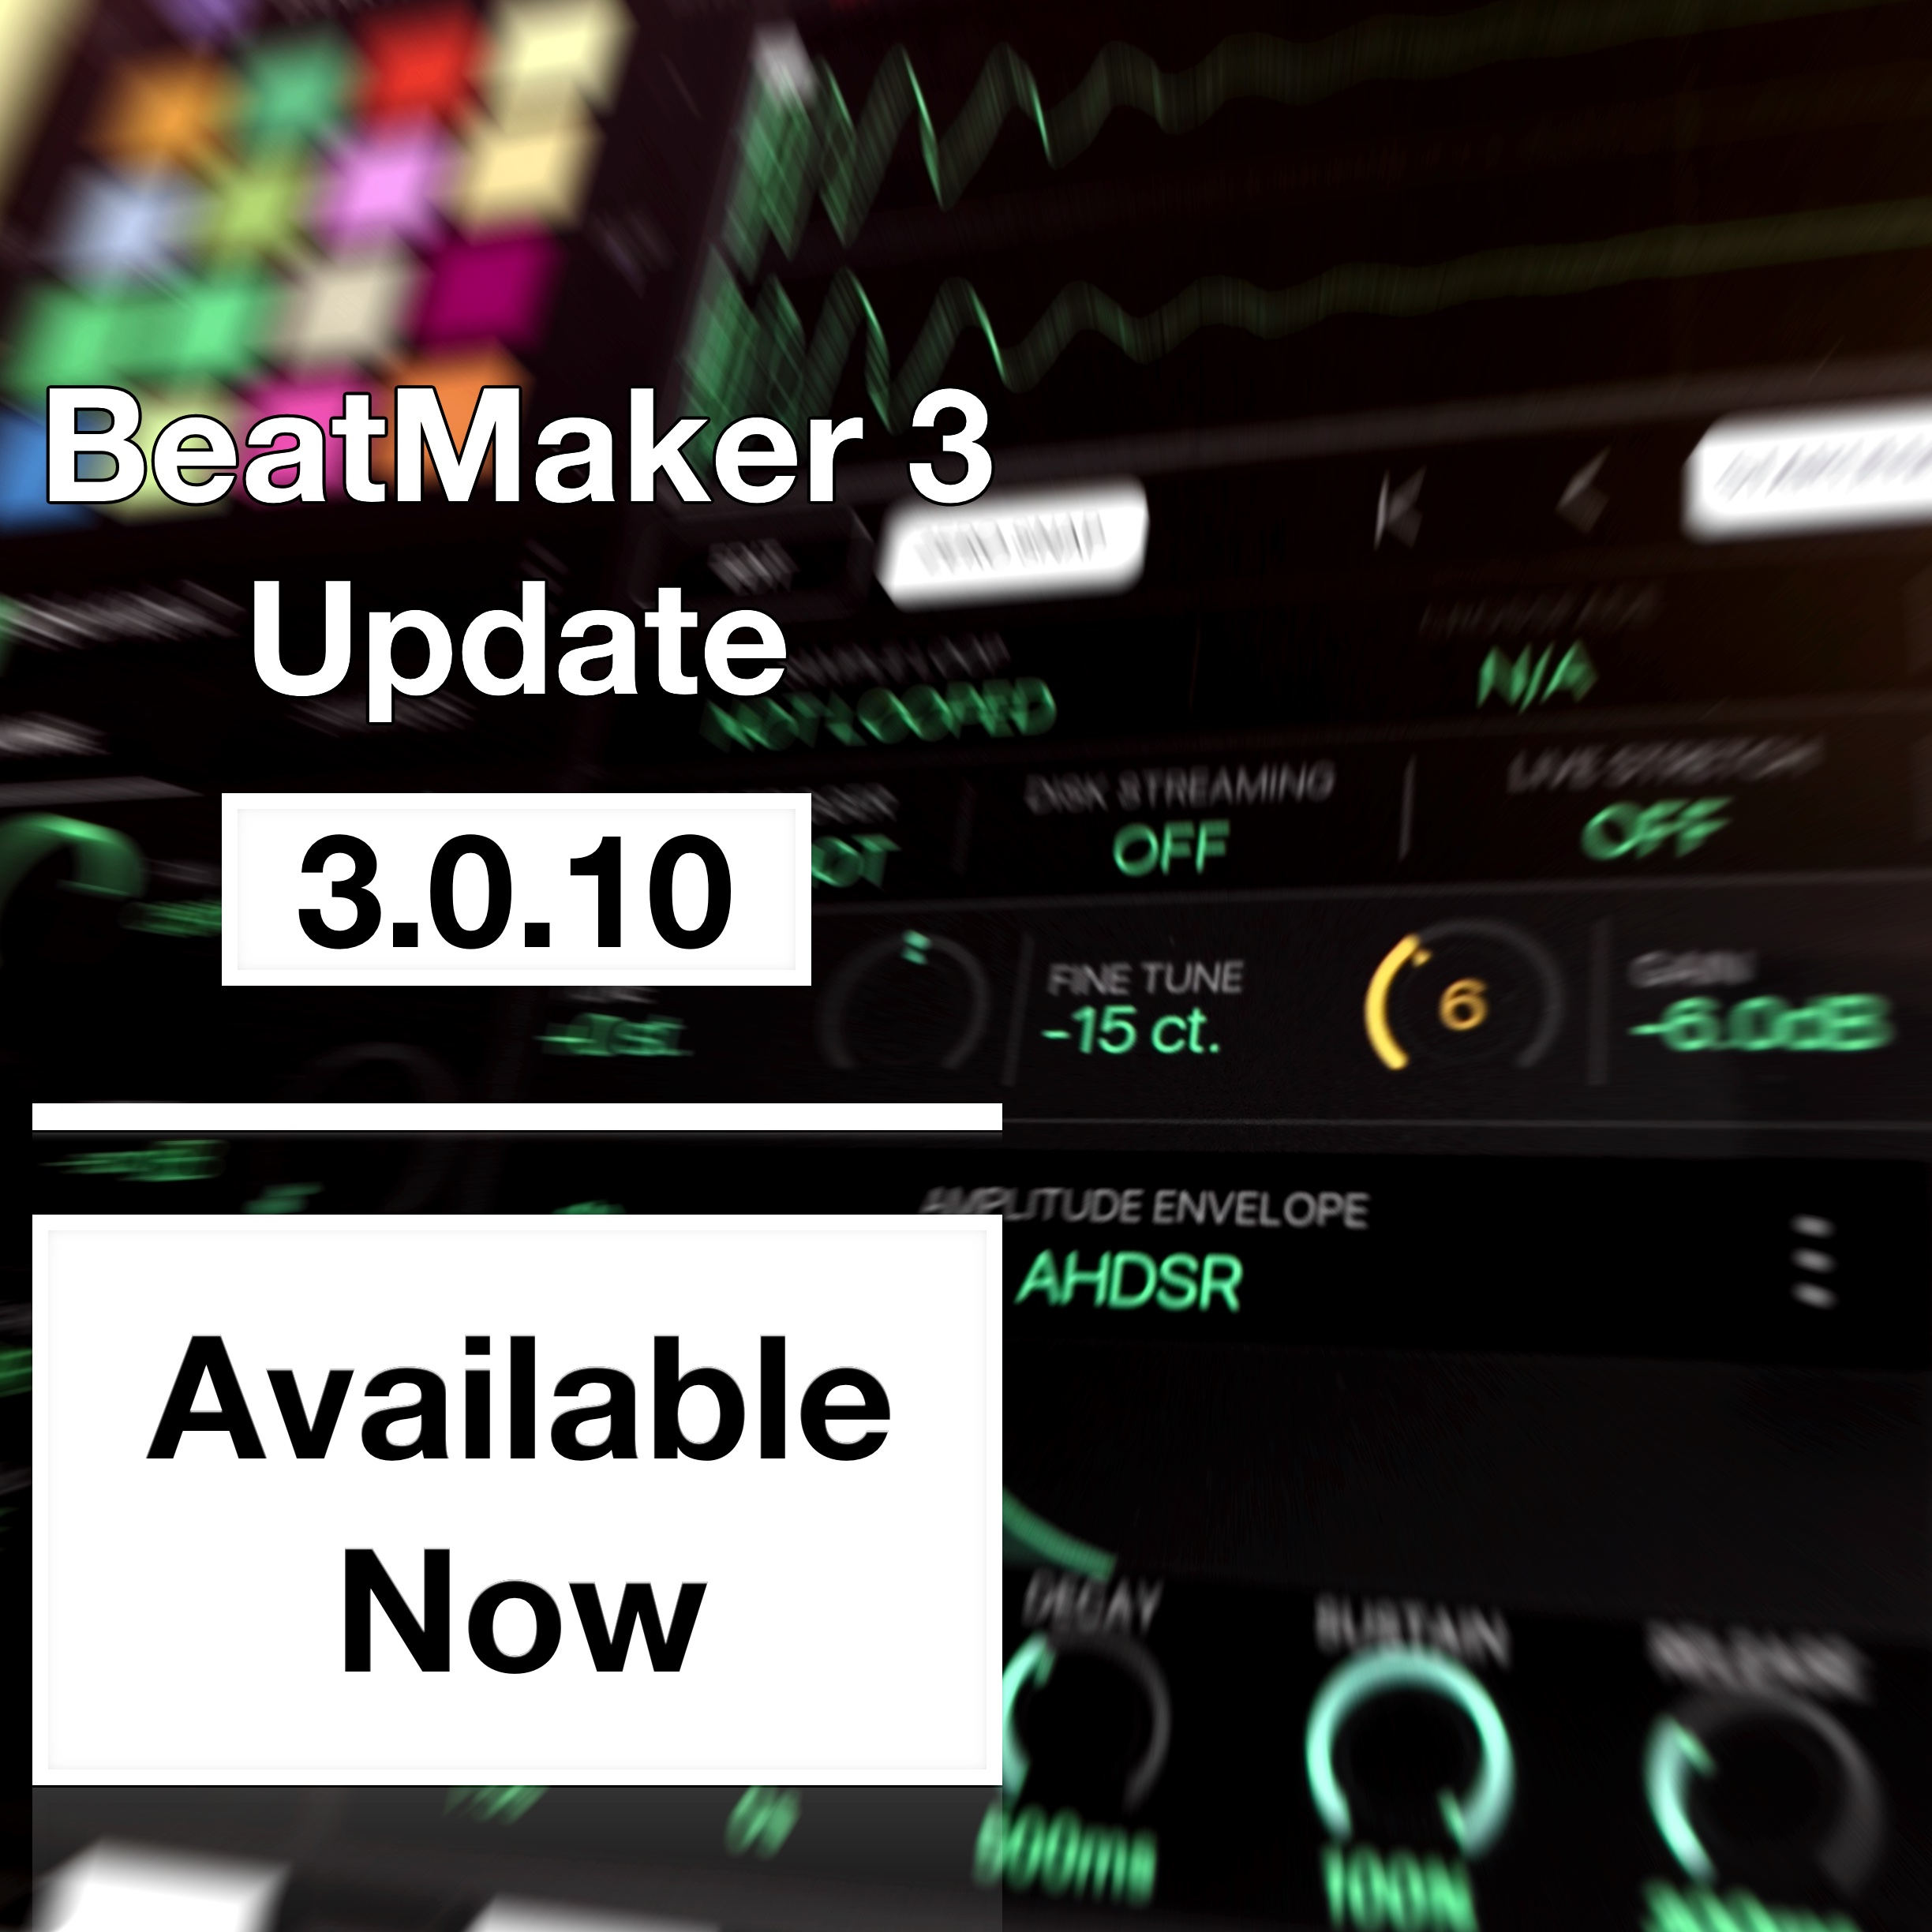 BeatMaker 3 Update 3.0.10